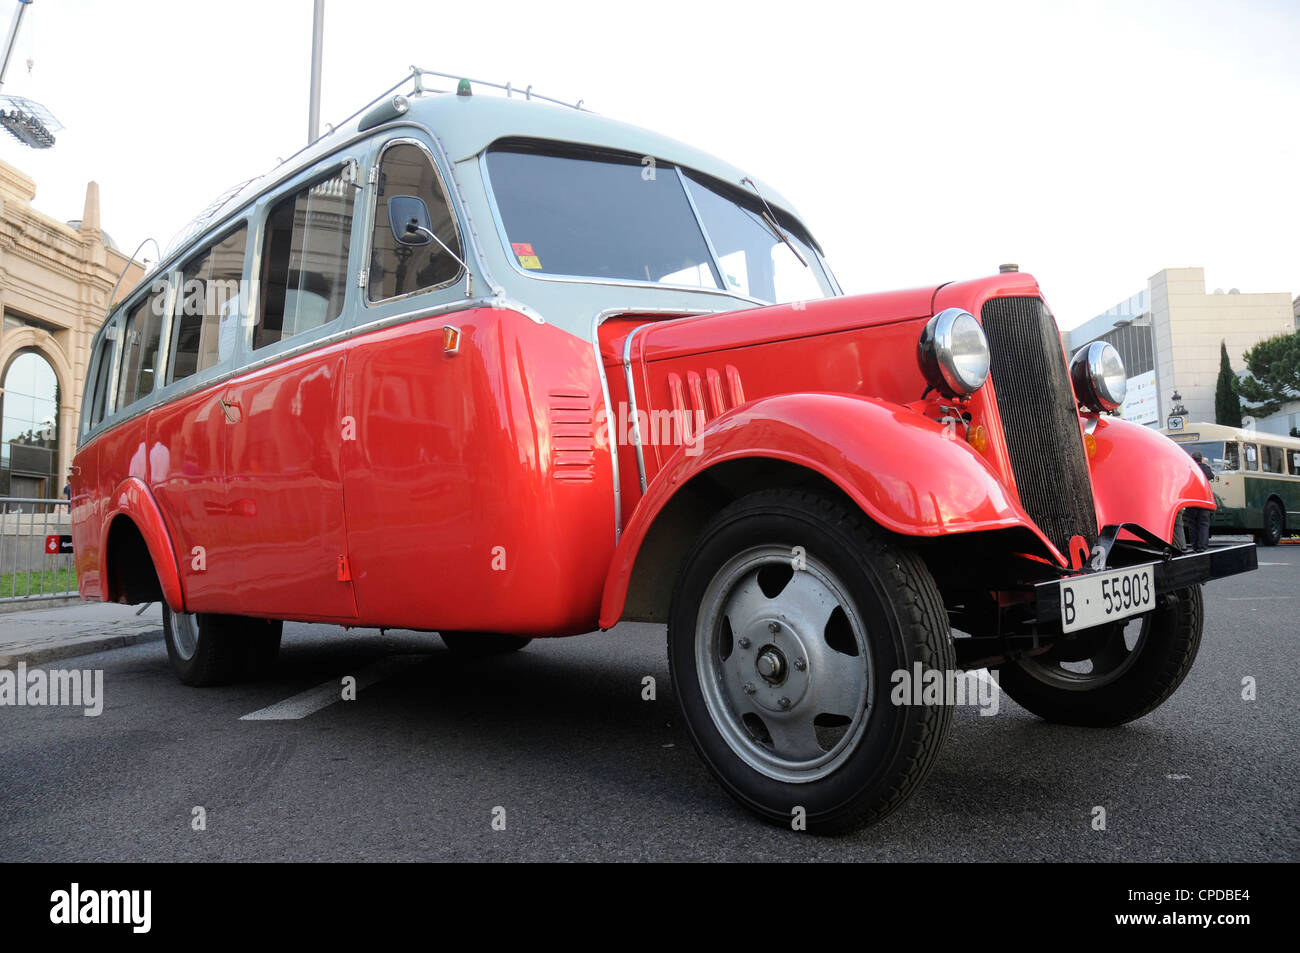 Chevrolet utility 1 1/2 victor valls 1934 owner: Sagales. 3TH classic bus Rally Barcelona - Stock Image